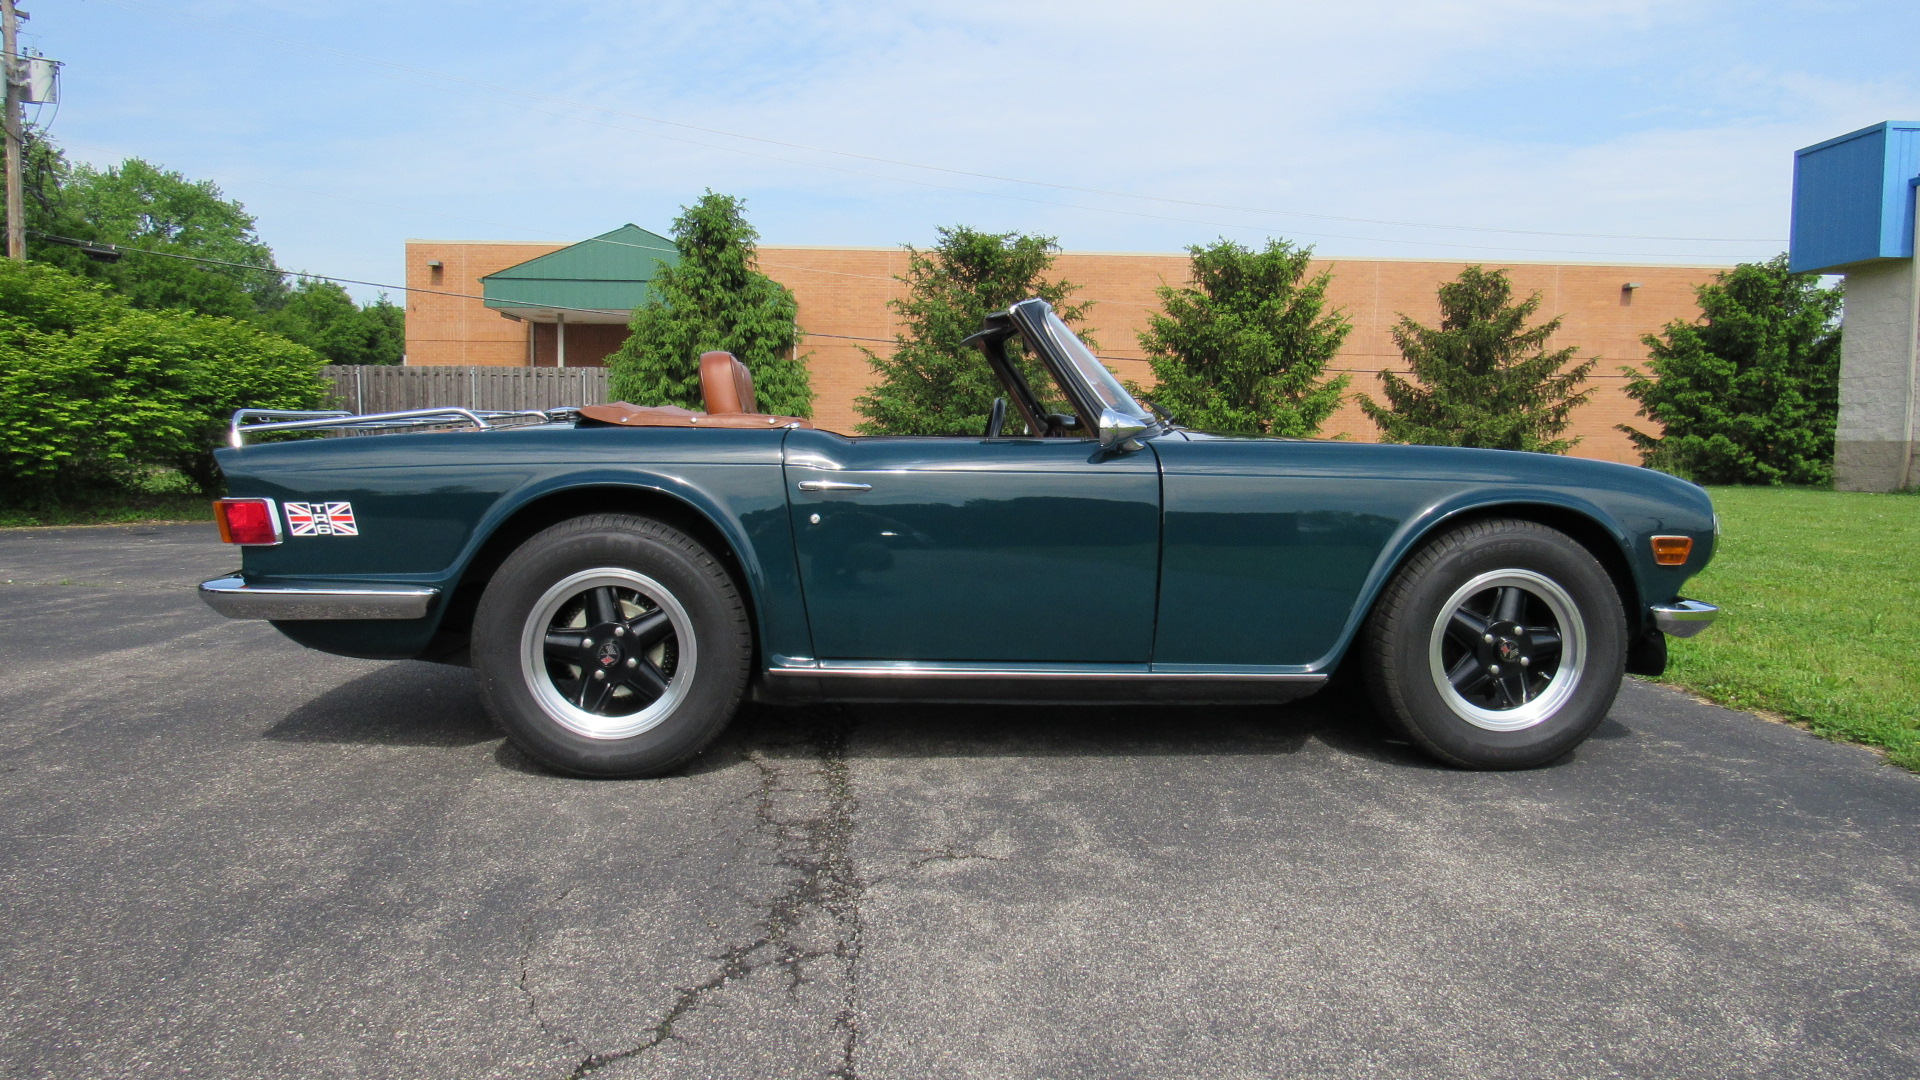 Cincy Classic Cars - Recently Sold Cars